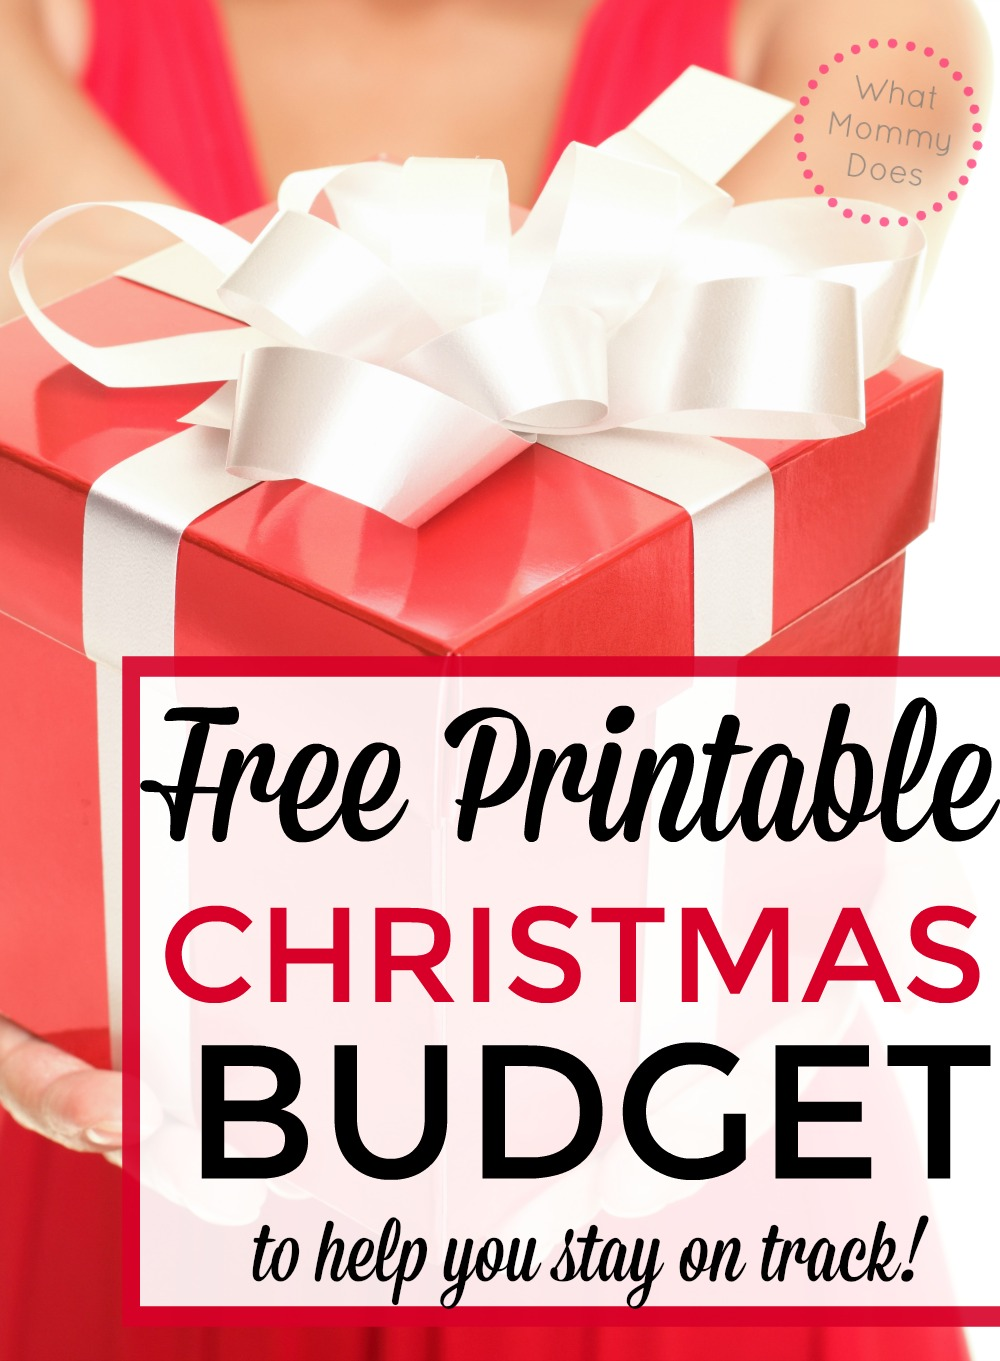 Last year I used a Christmas budget printable like this one to keep track of how much I was spending on Christmas gifts. This year I'm using this Excel spreadsheet to keep my list in check! It's so practical! All you have to do is list each kid or family member in the tracker + aim to keep on budget. I worked hard to build up Christmas savings! Now I need to keep on track. | savings plan, budgeting template, free worksheet